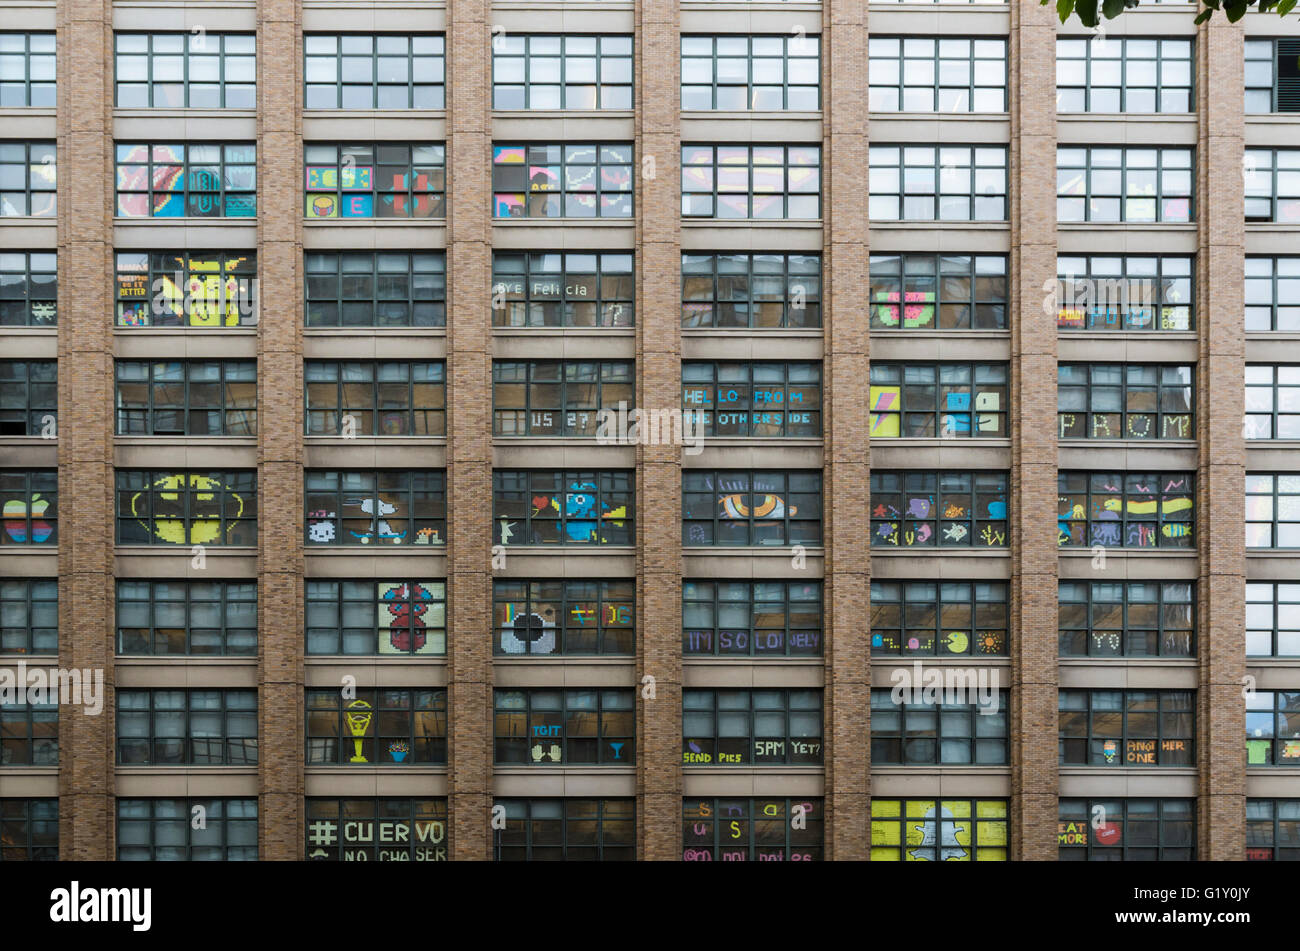 city building windows. Colourful Pixel Art Made From Post It Notes By Employees In The Windows Of  Rival Office Buildings On Canal Street New York City